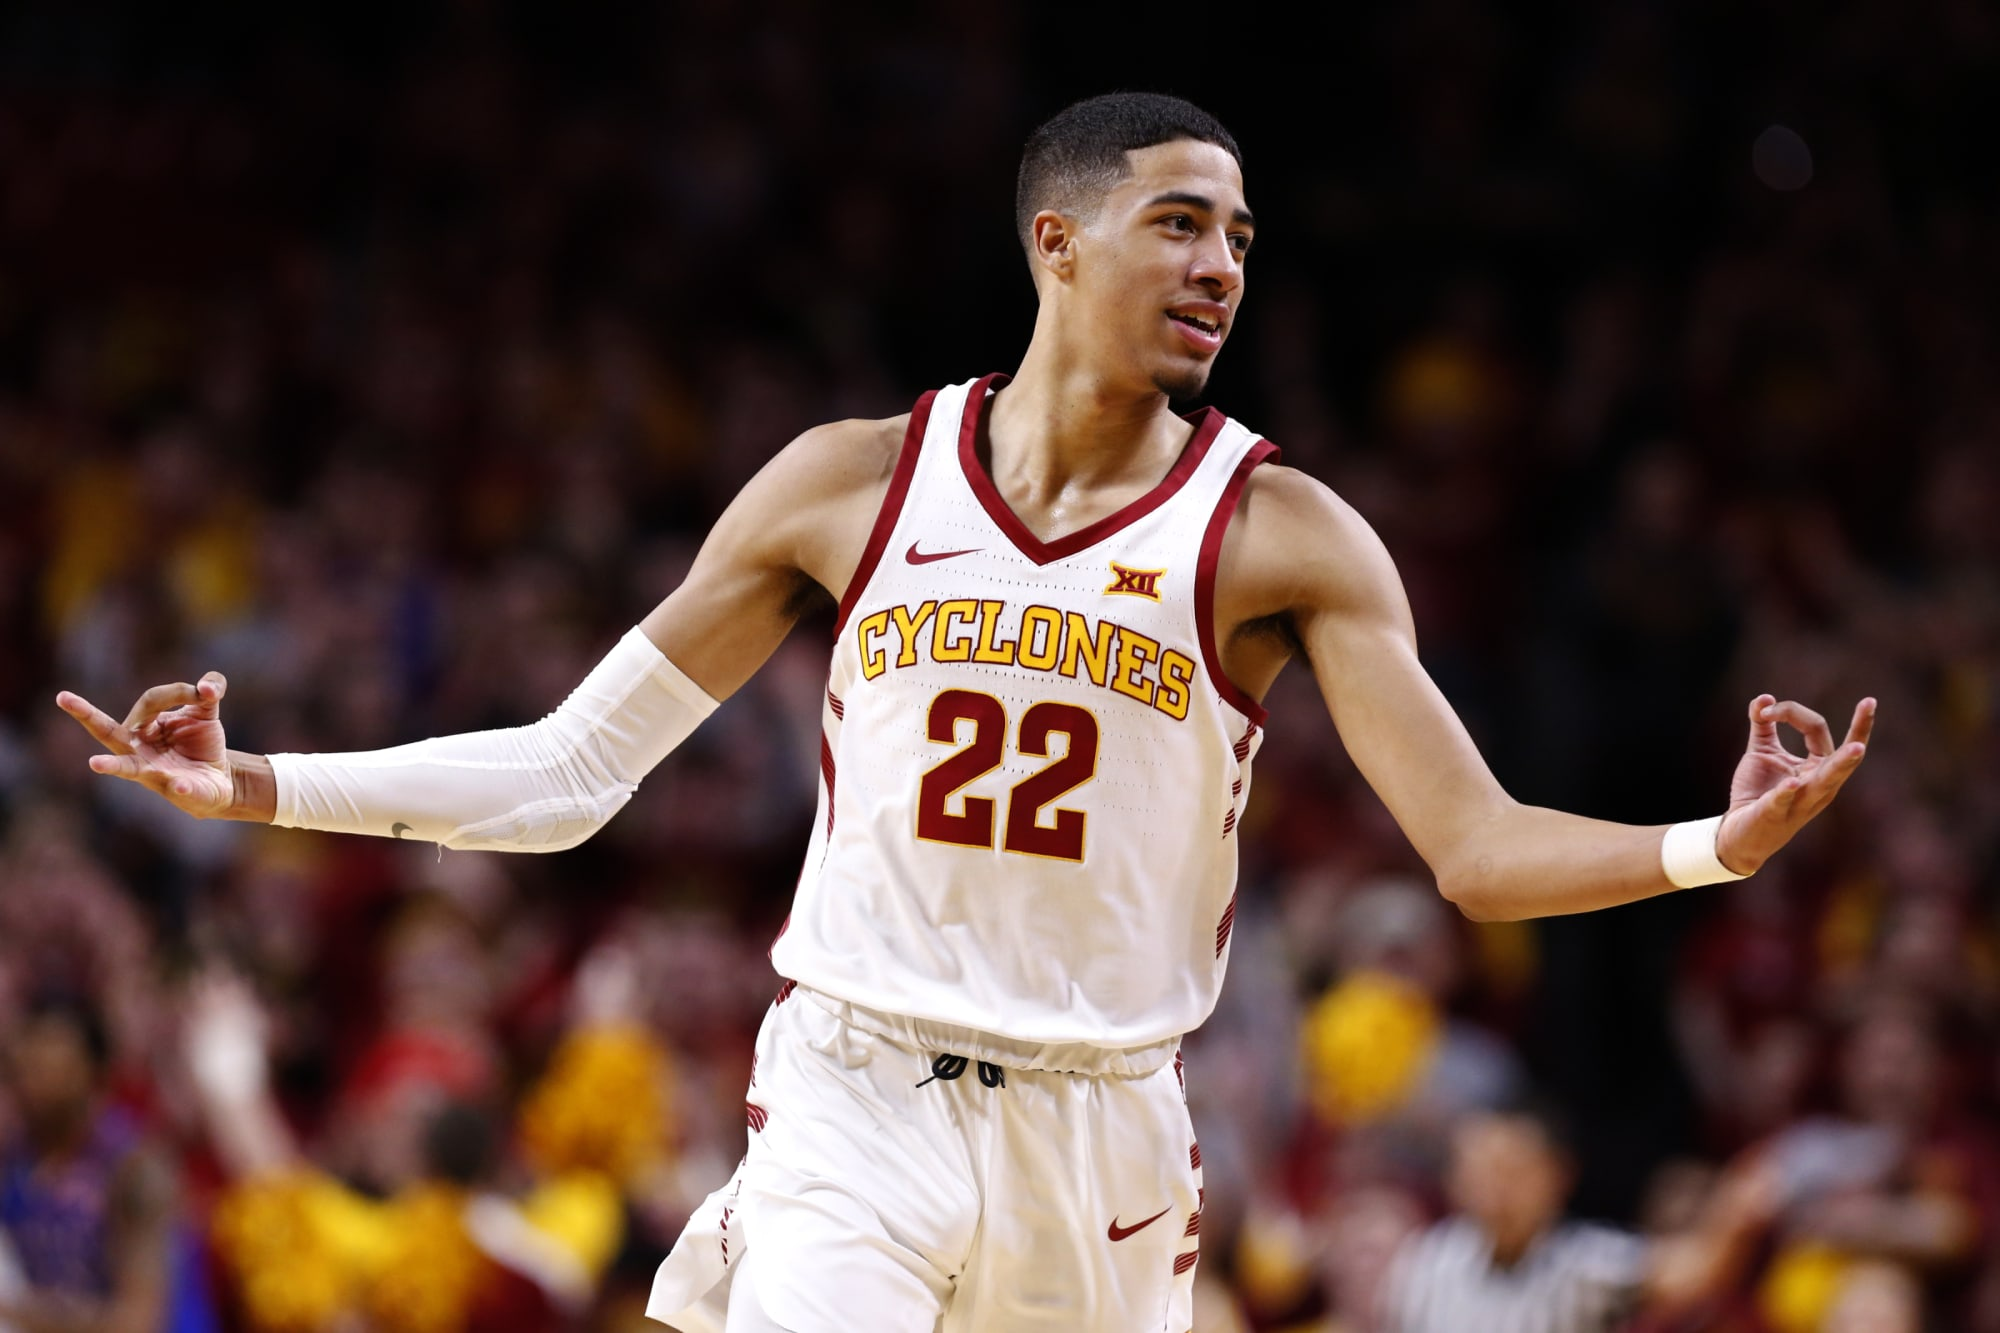 New York Knicks: Why it should be Tyrese Haliburton or trade